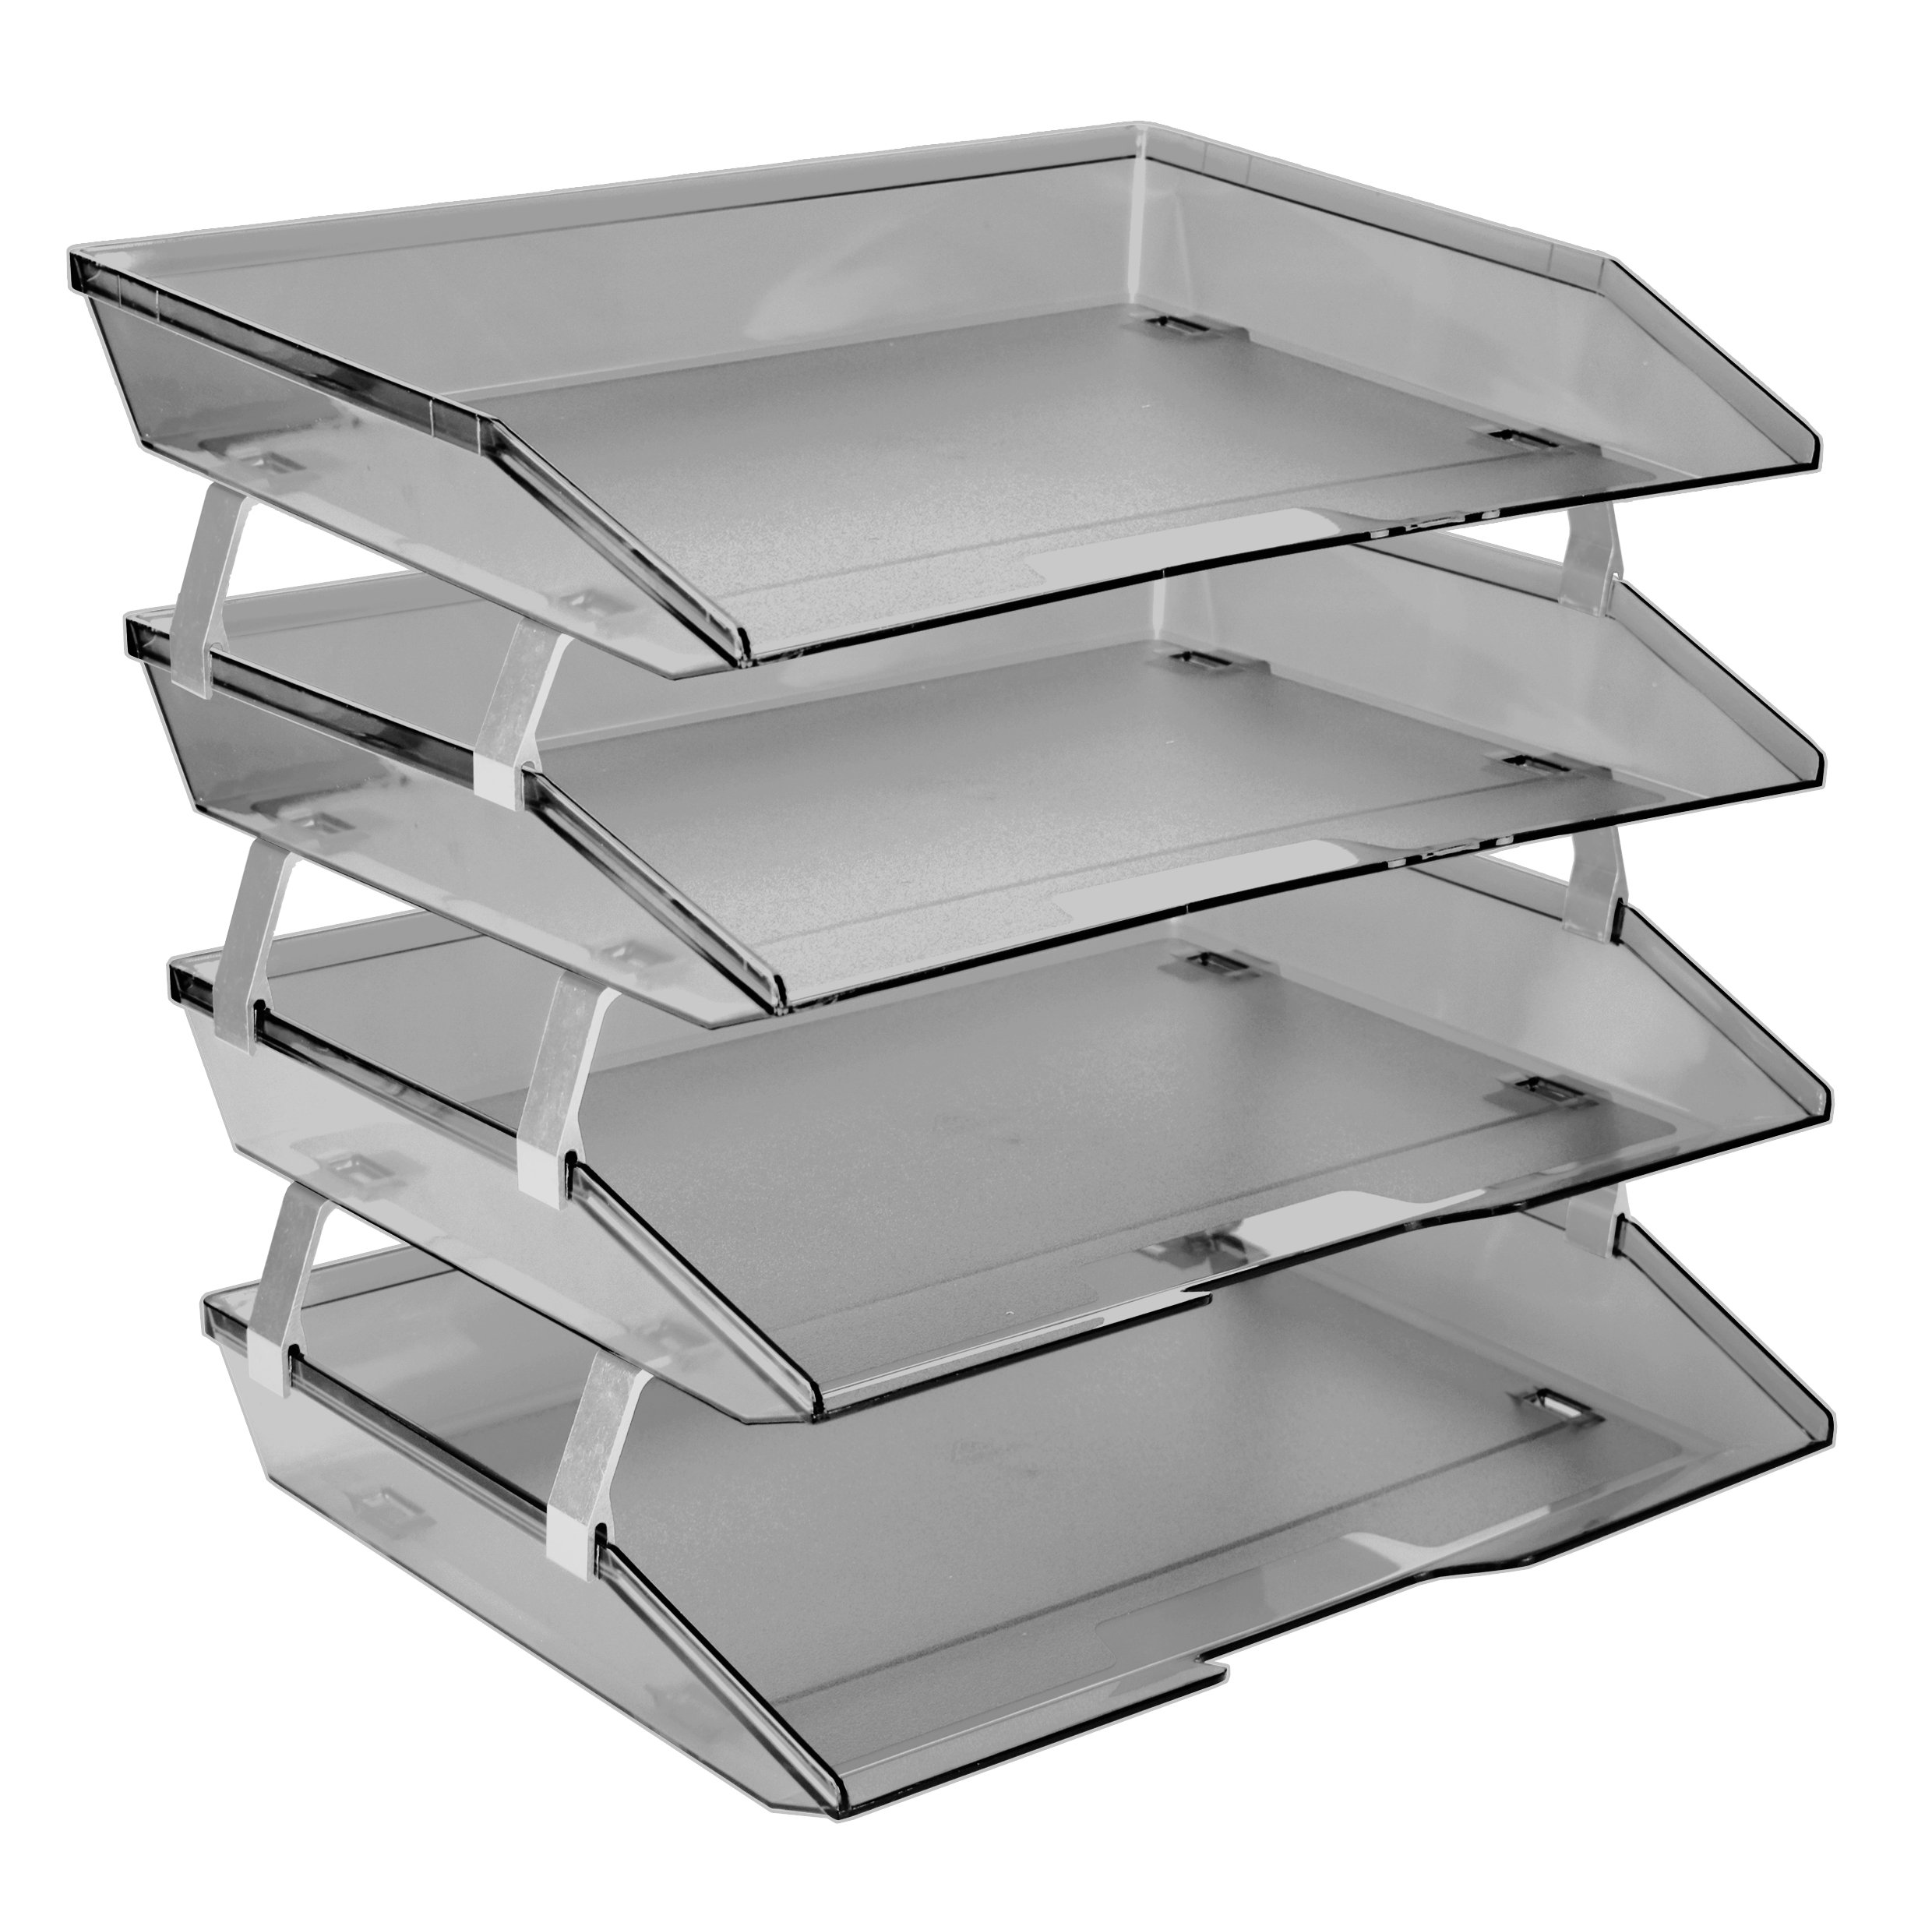 Acrimet Facility Letter Tray 4 Tiers (Smoke Color)